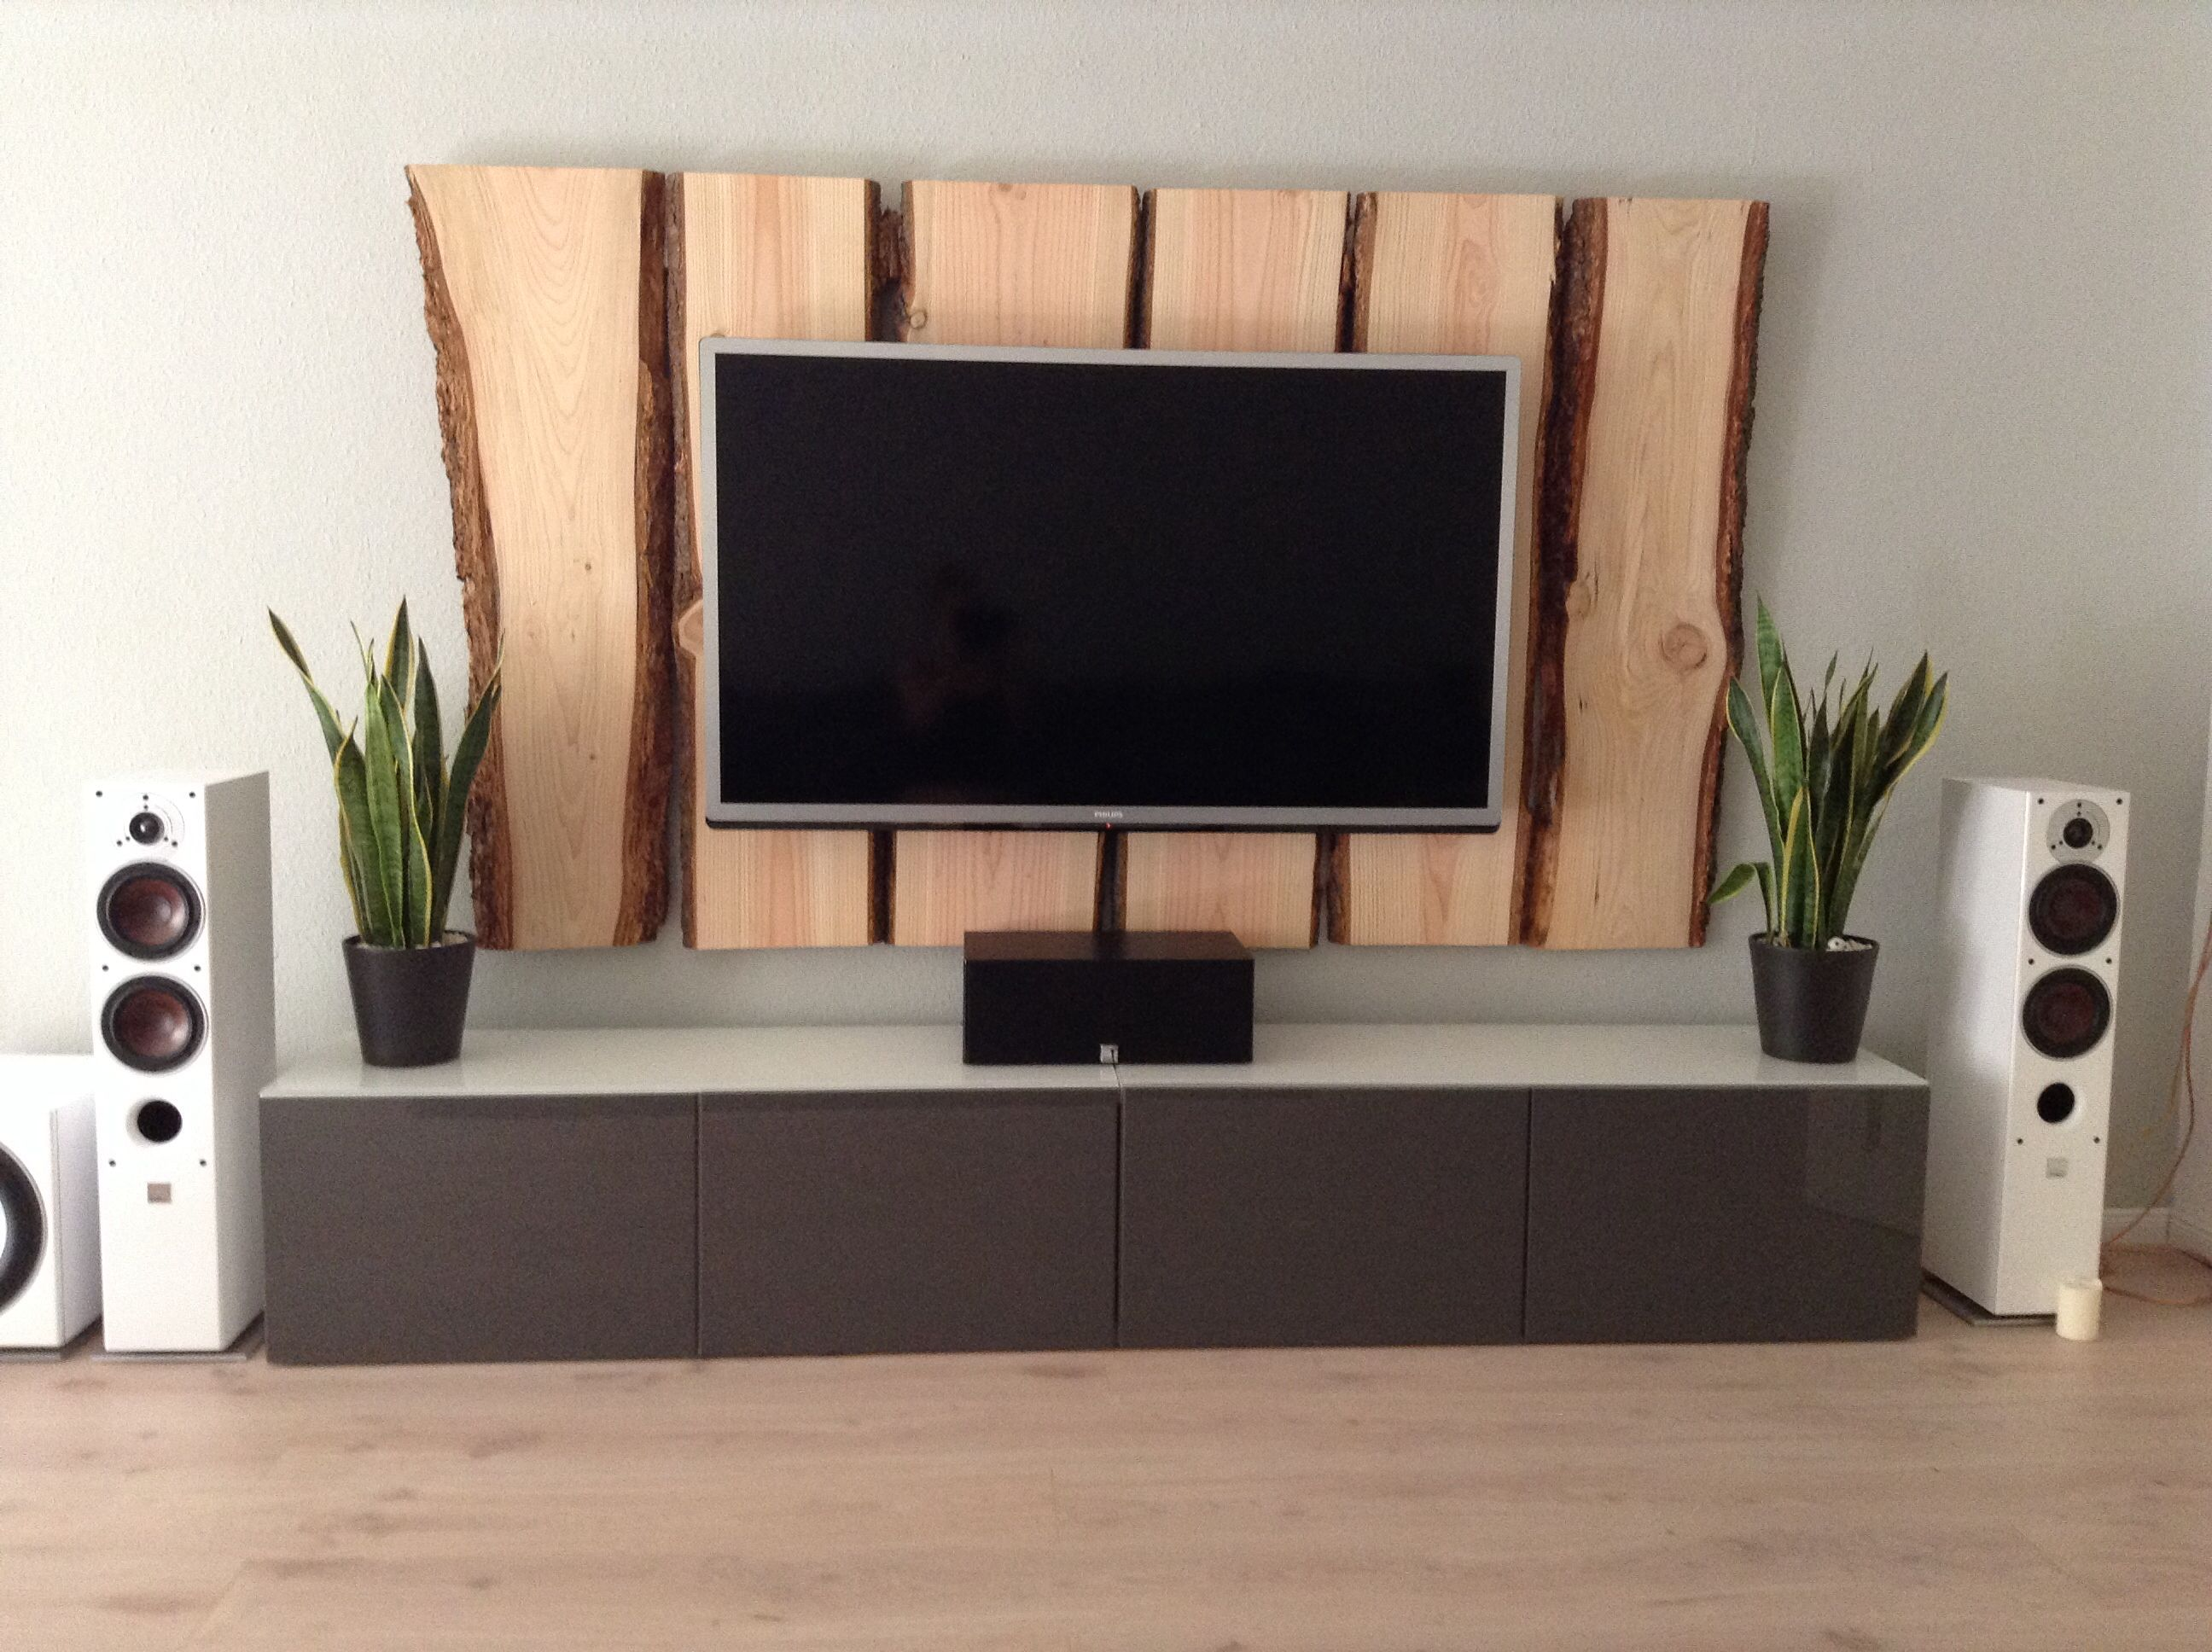 Tv Wand Trockenbau Tv Wand Holz Tv Wand Led Livingroom Ideas On Lighting Design